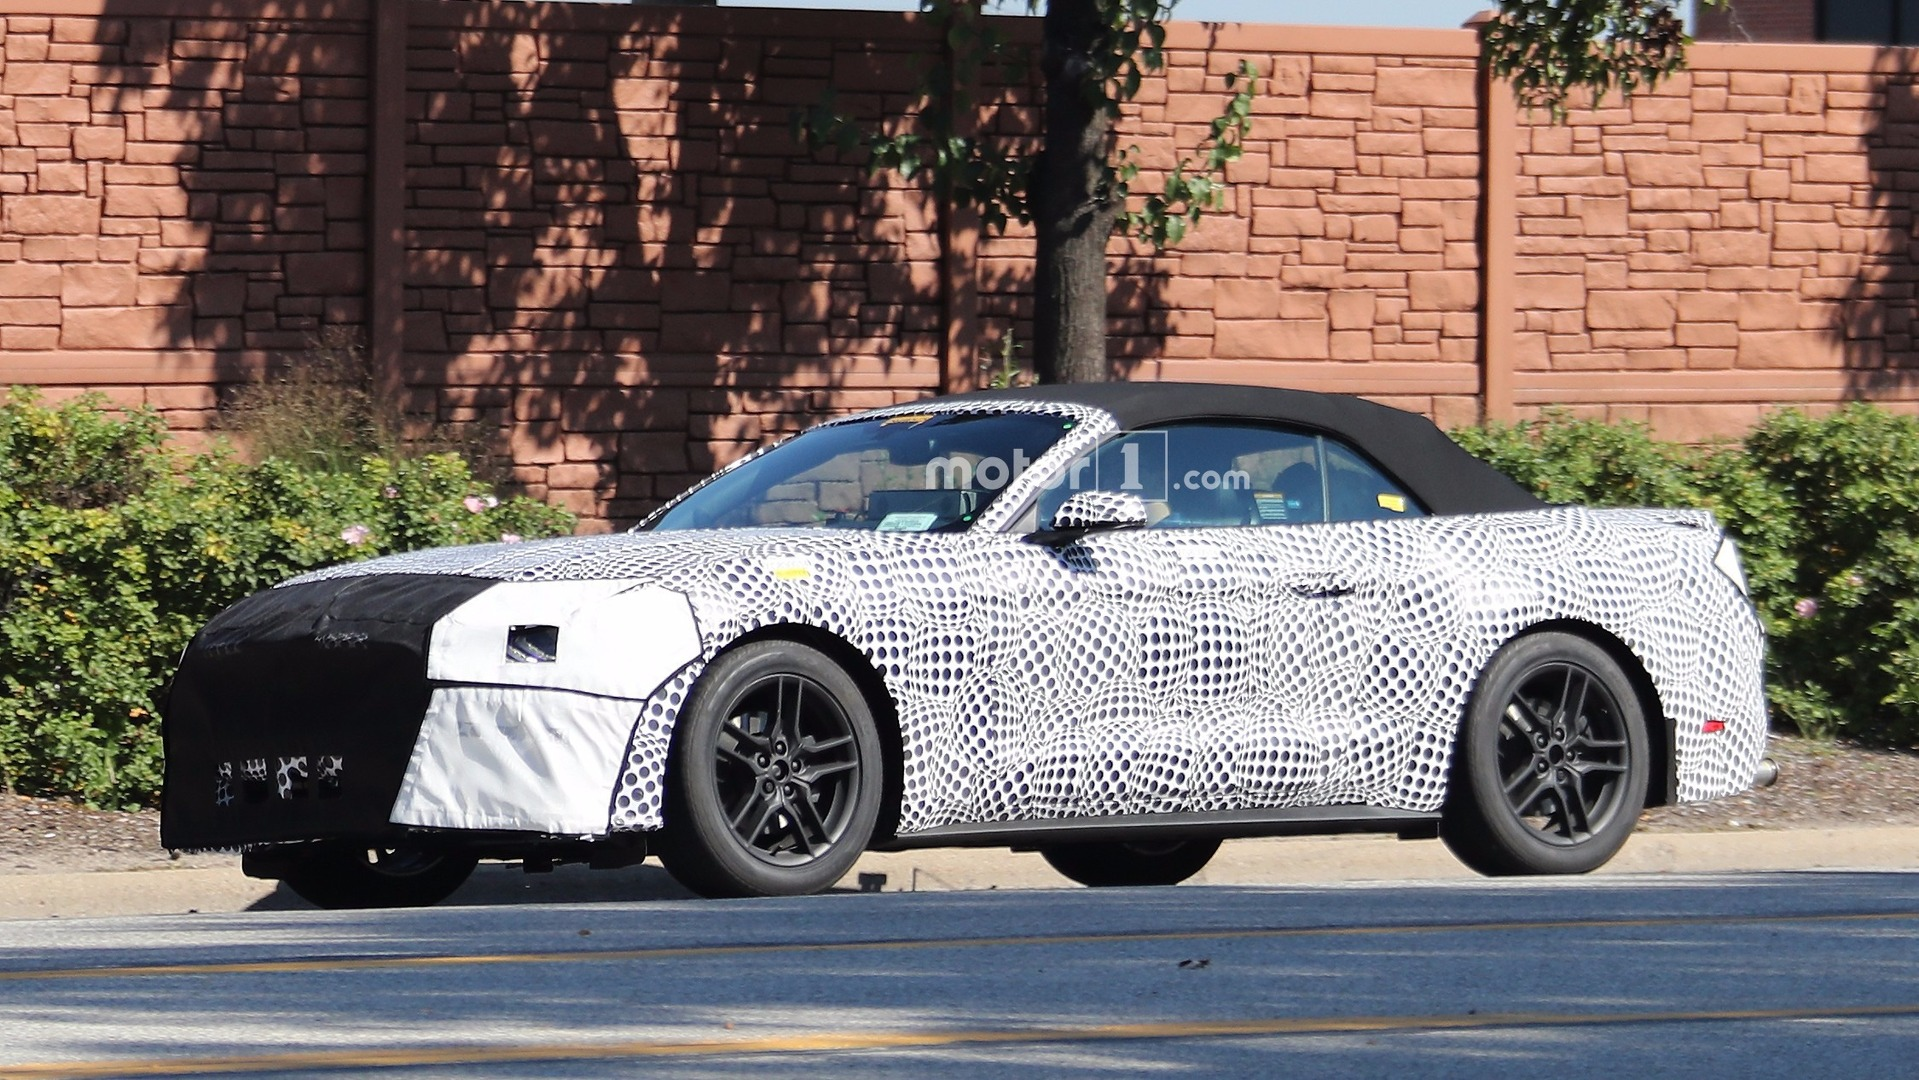 2018 Ford Mustang Convertible spied with heavy camo